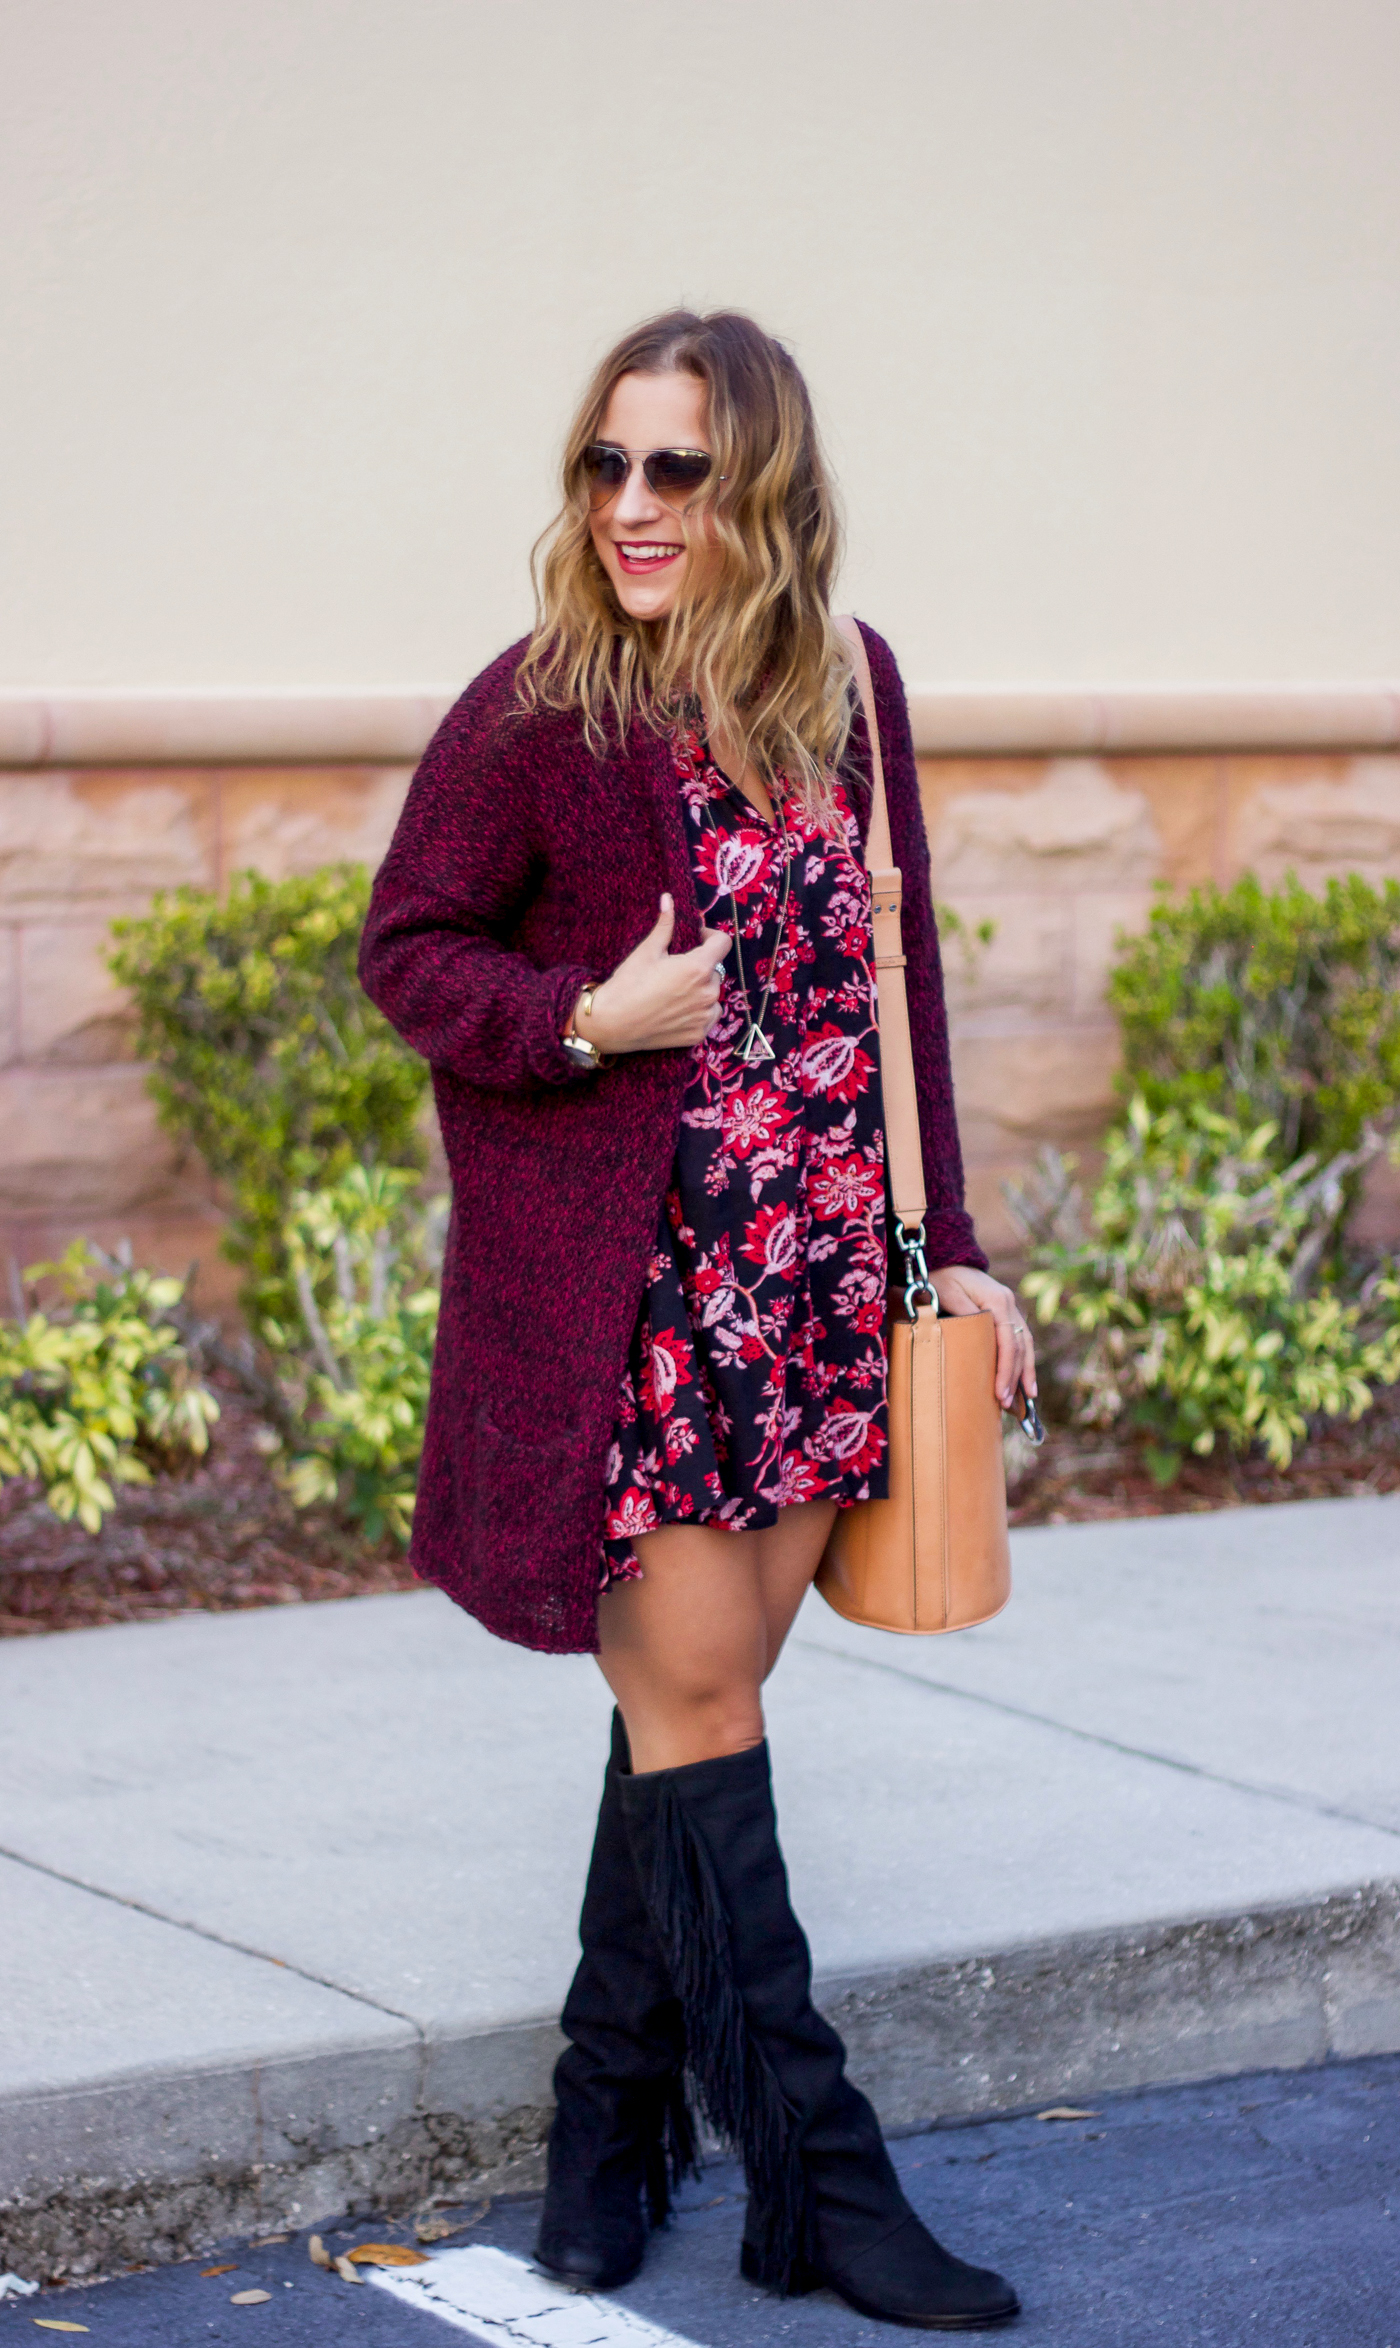 Burgundy cardigan from Aritzia, paired with a dark floral dress from Nordstrom Rack and fringe boots by Sam Edelman